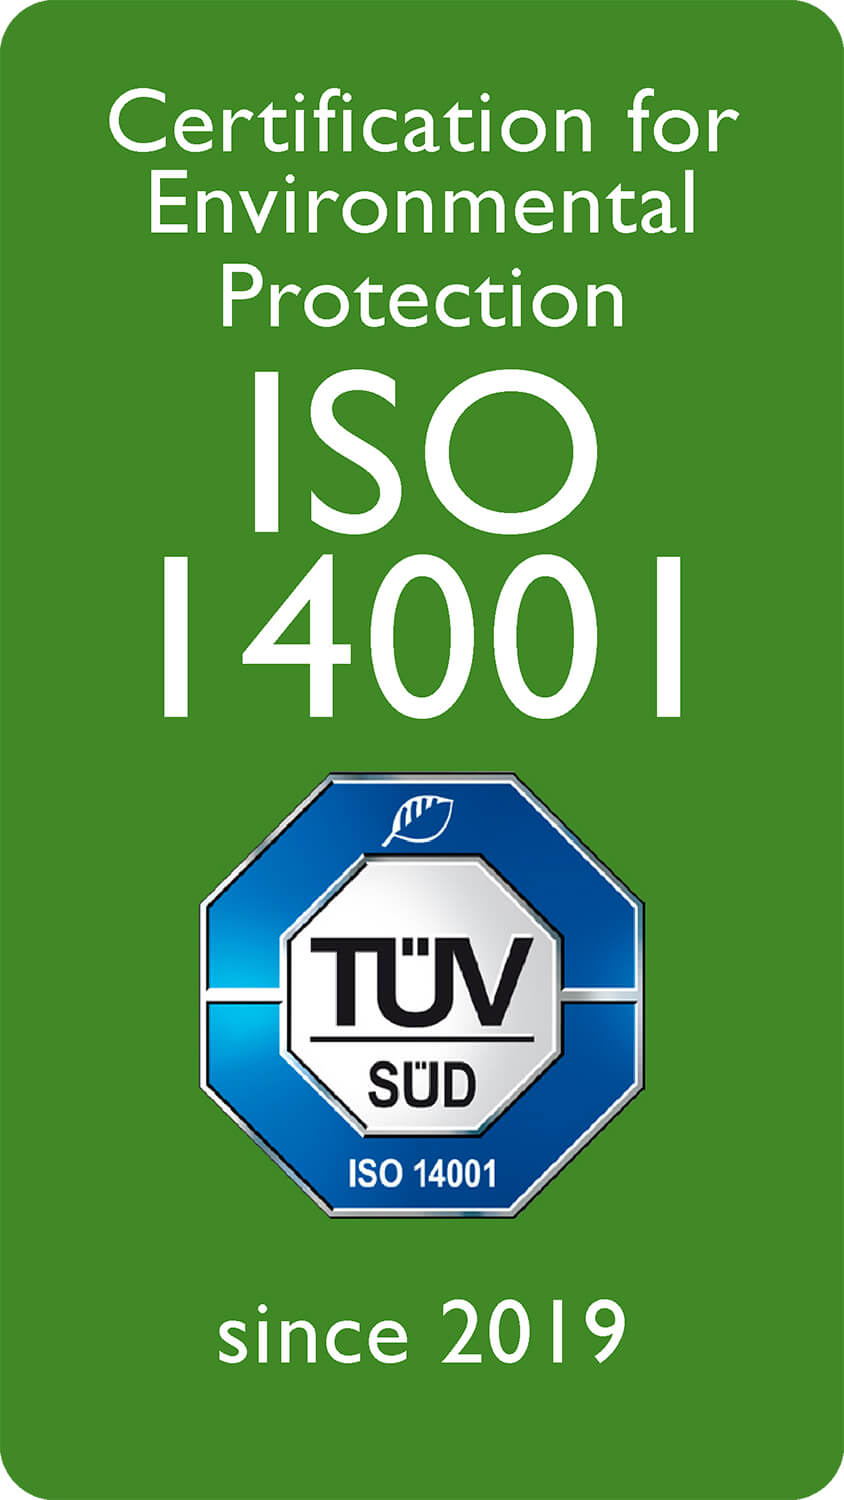 Certification for Environmental Protection ISO 14001 since 2019